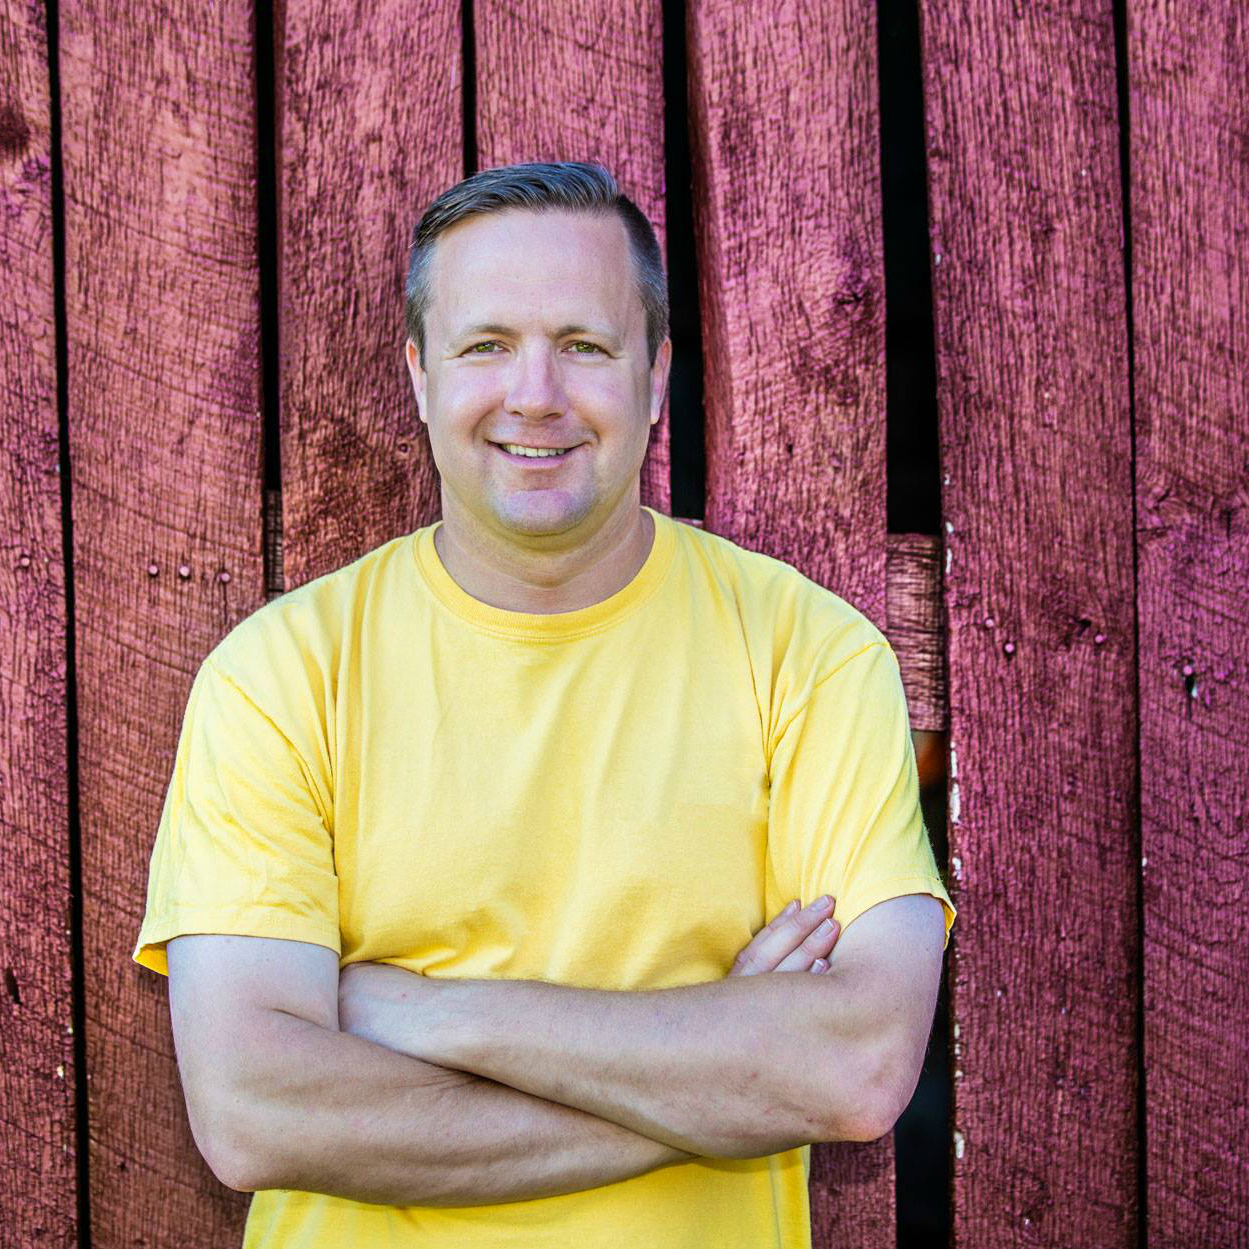 Corey Stewart Is Currently The At Large Chairman Of The Board Of County Supervisors In Prince William Pwc The Nd Largest And Fastest Growing County In